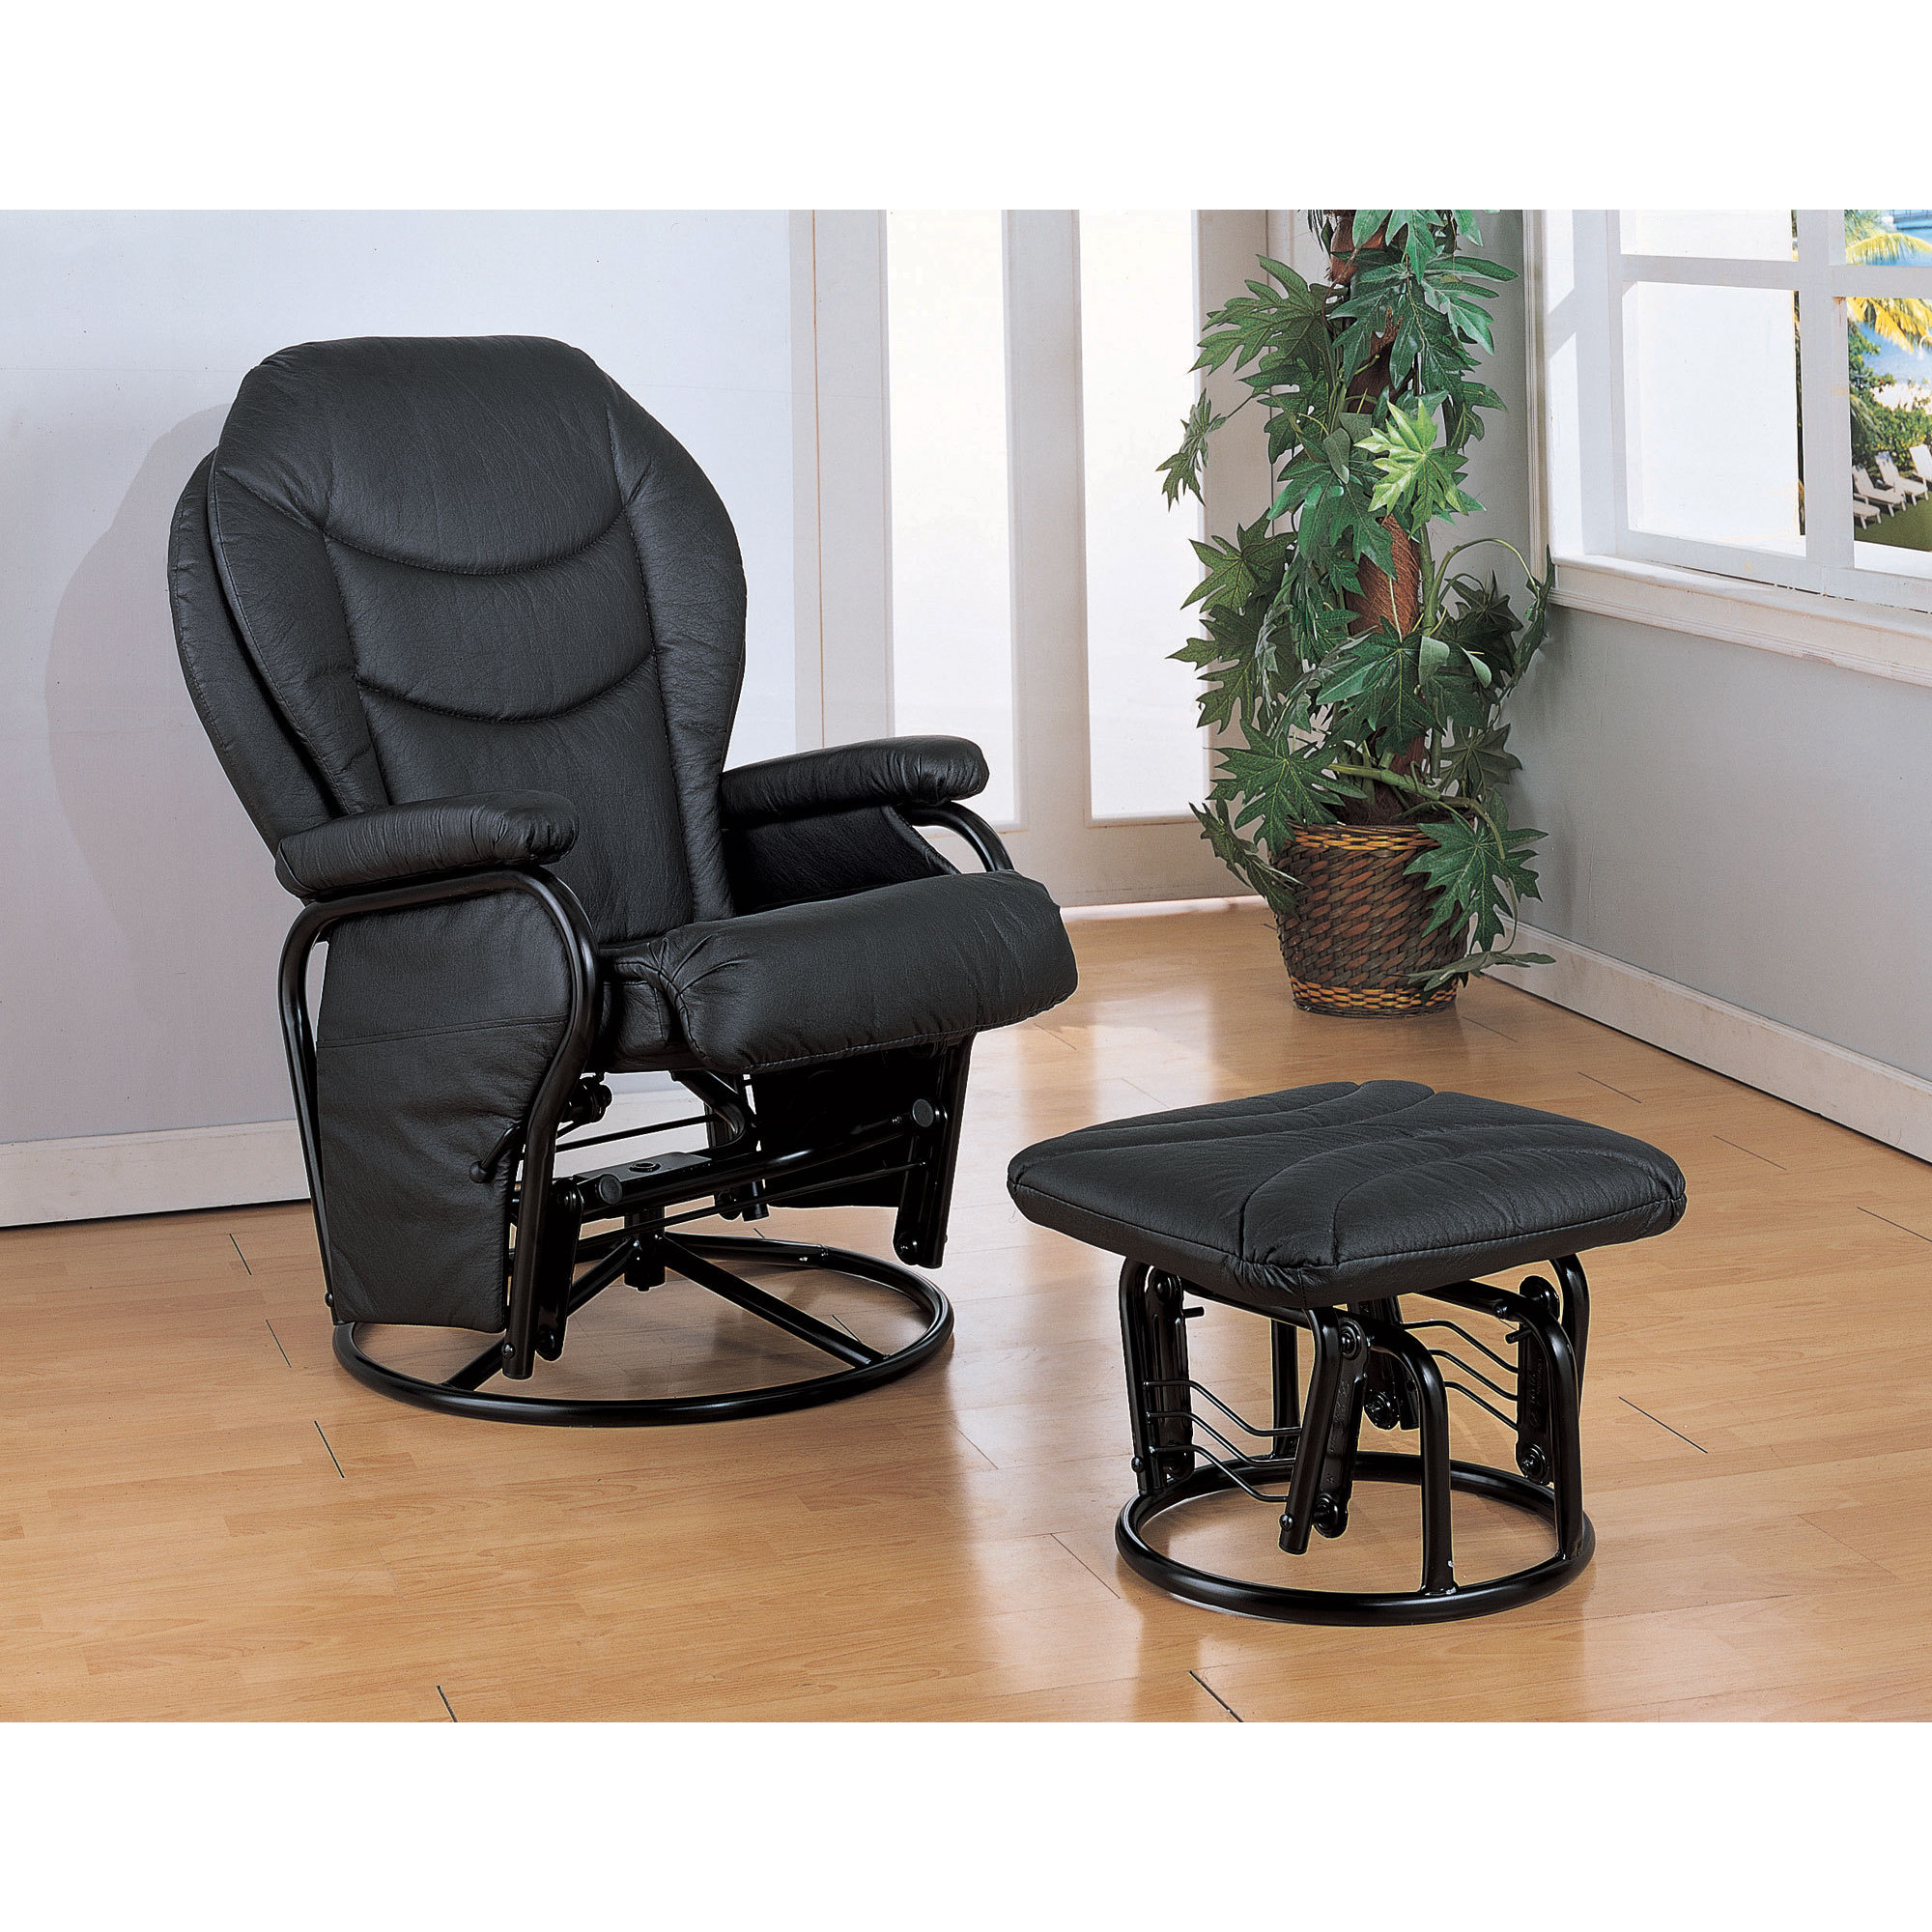 Coaster Furniture Black Leatherette Glider Chair with Ott...